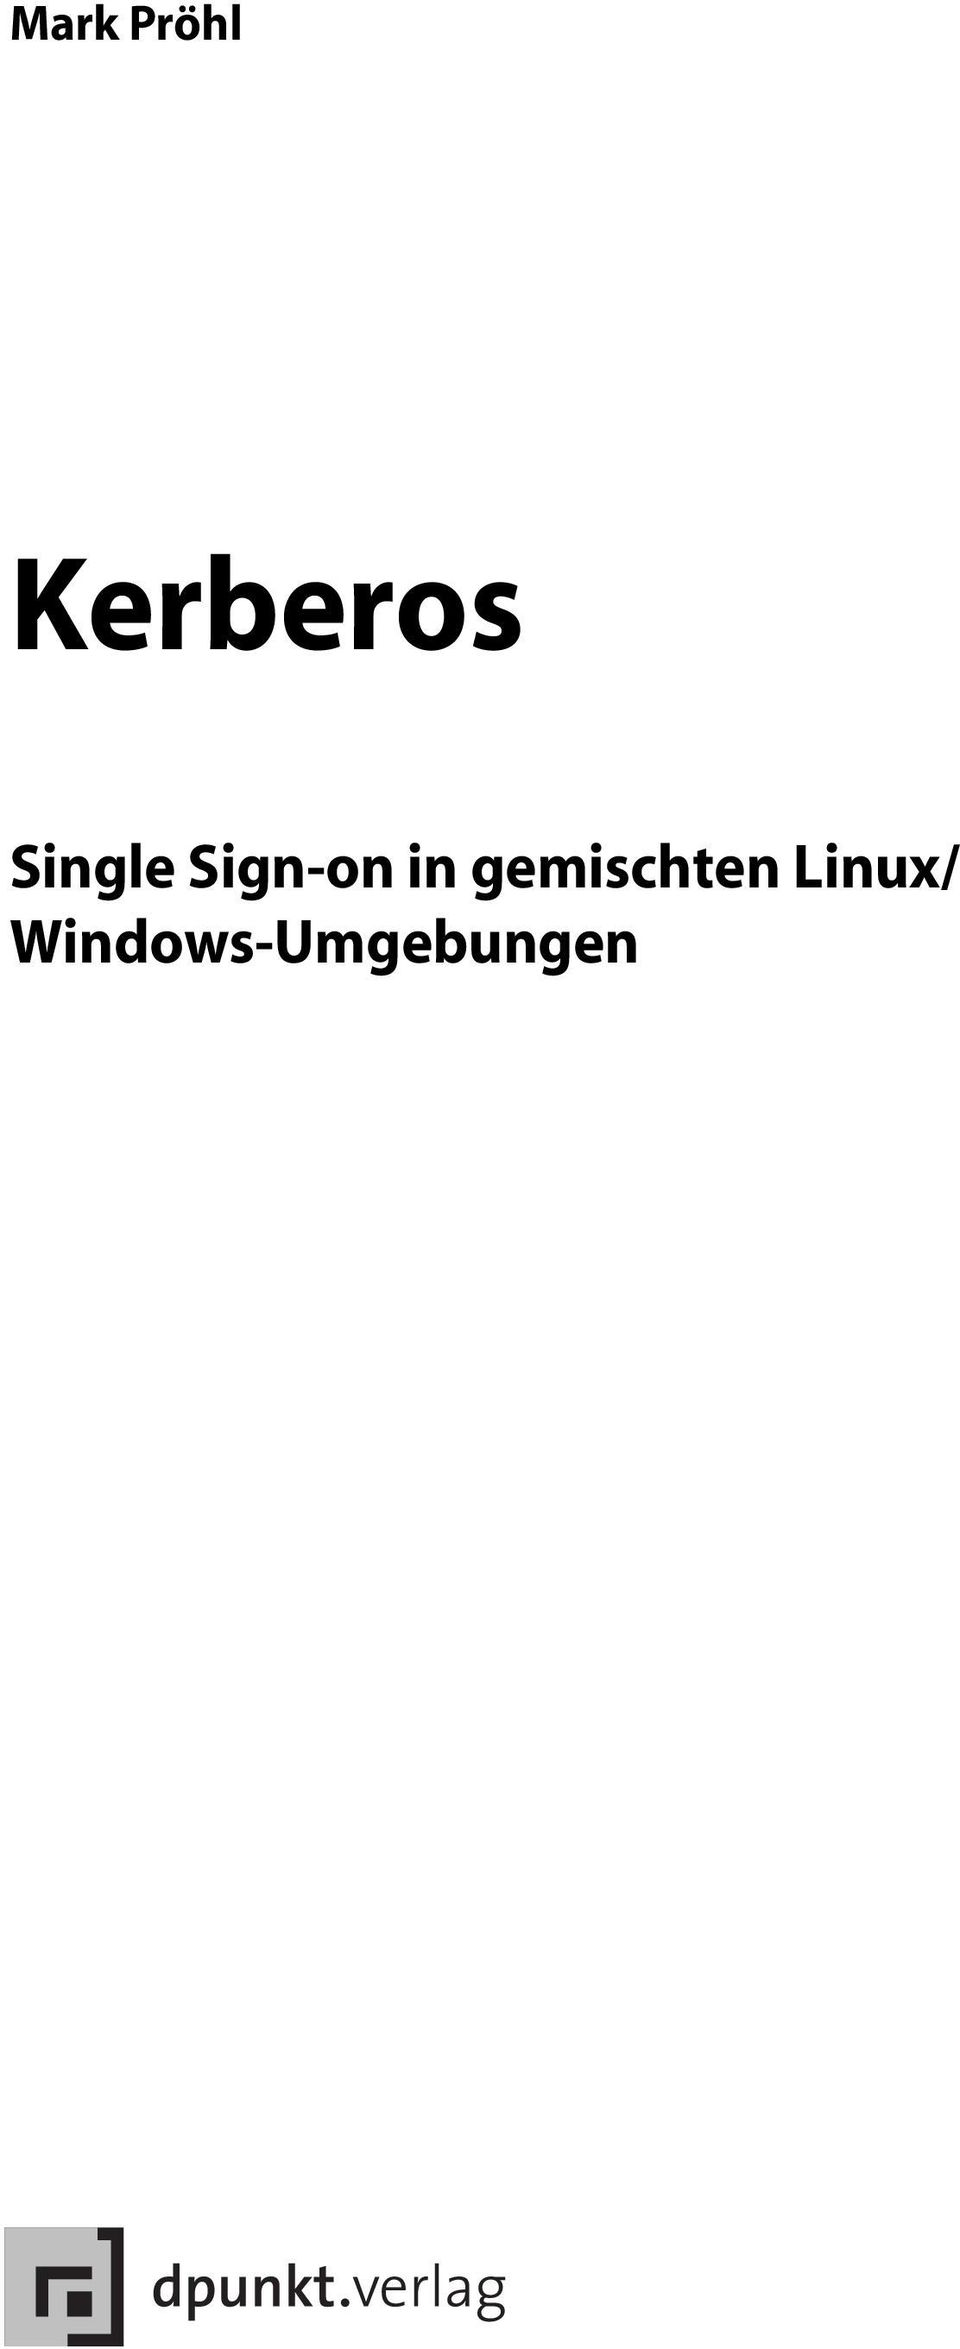 Sign-on in